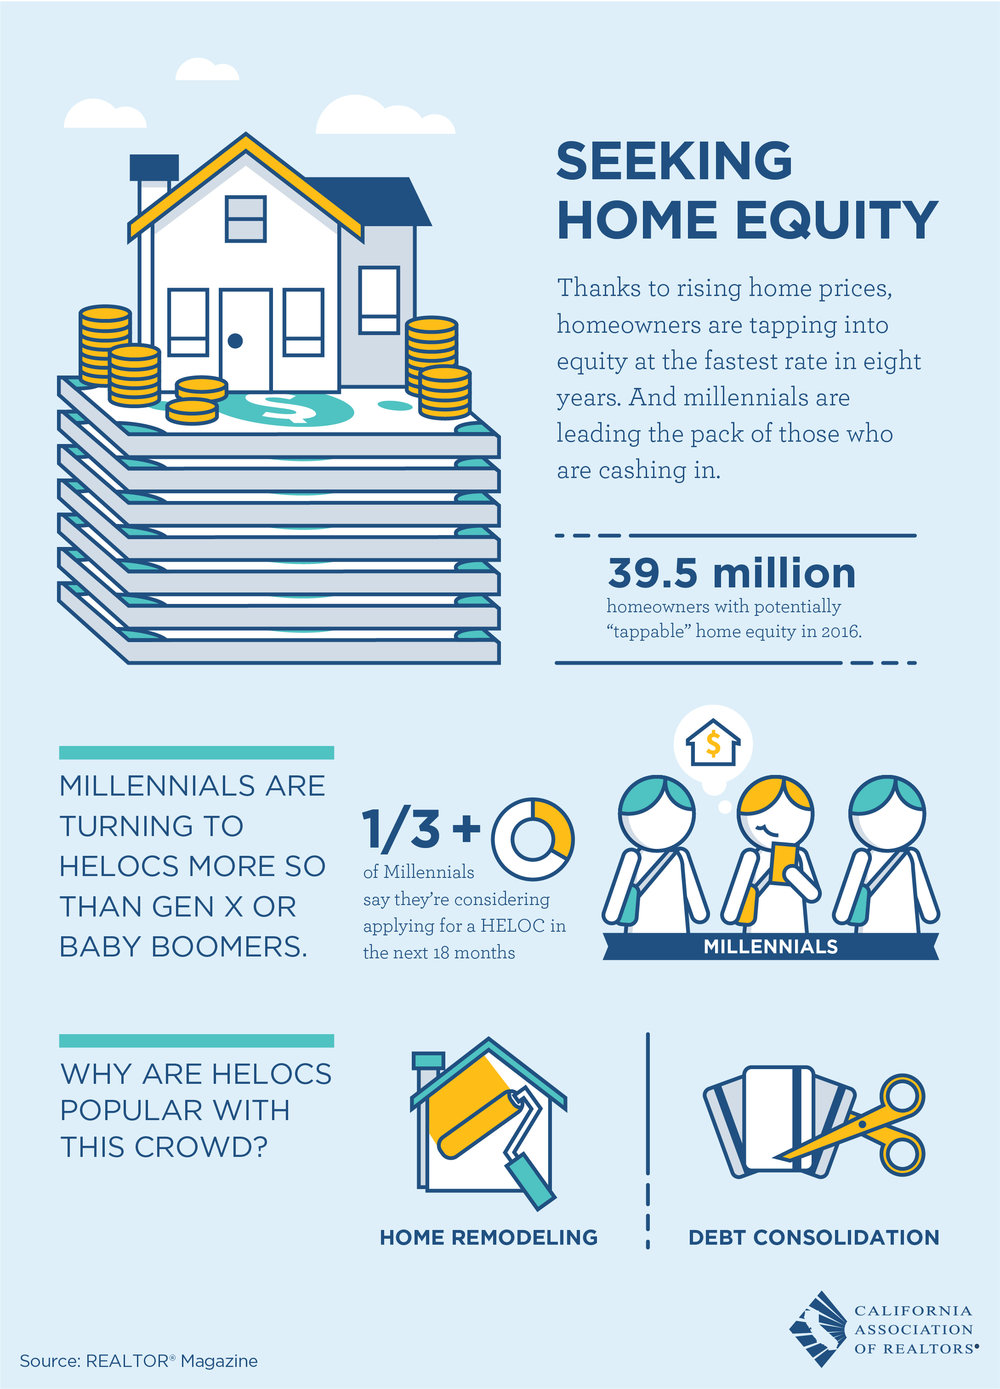 HELOC = Home Equity Line Of Credit